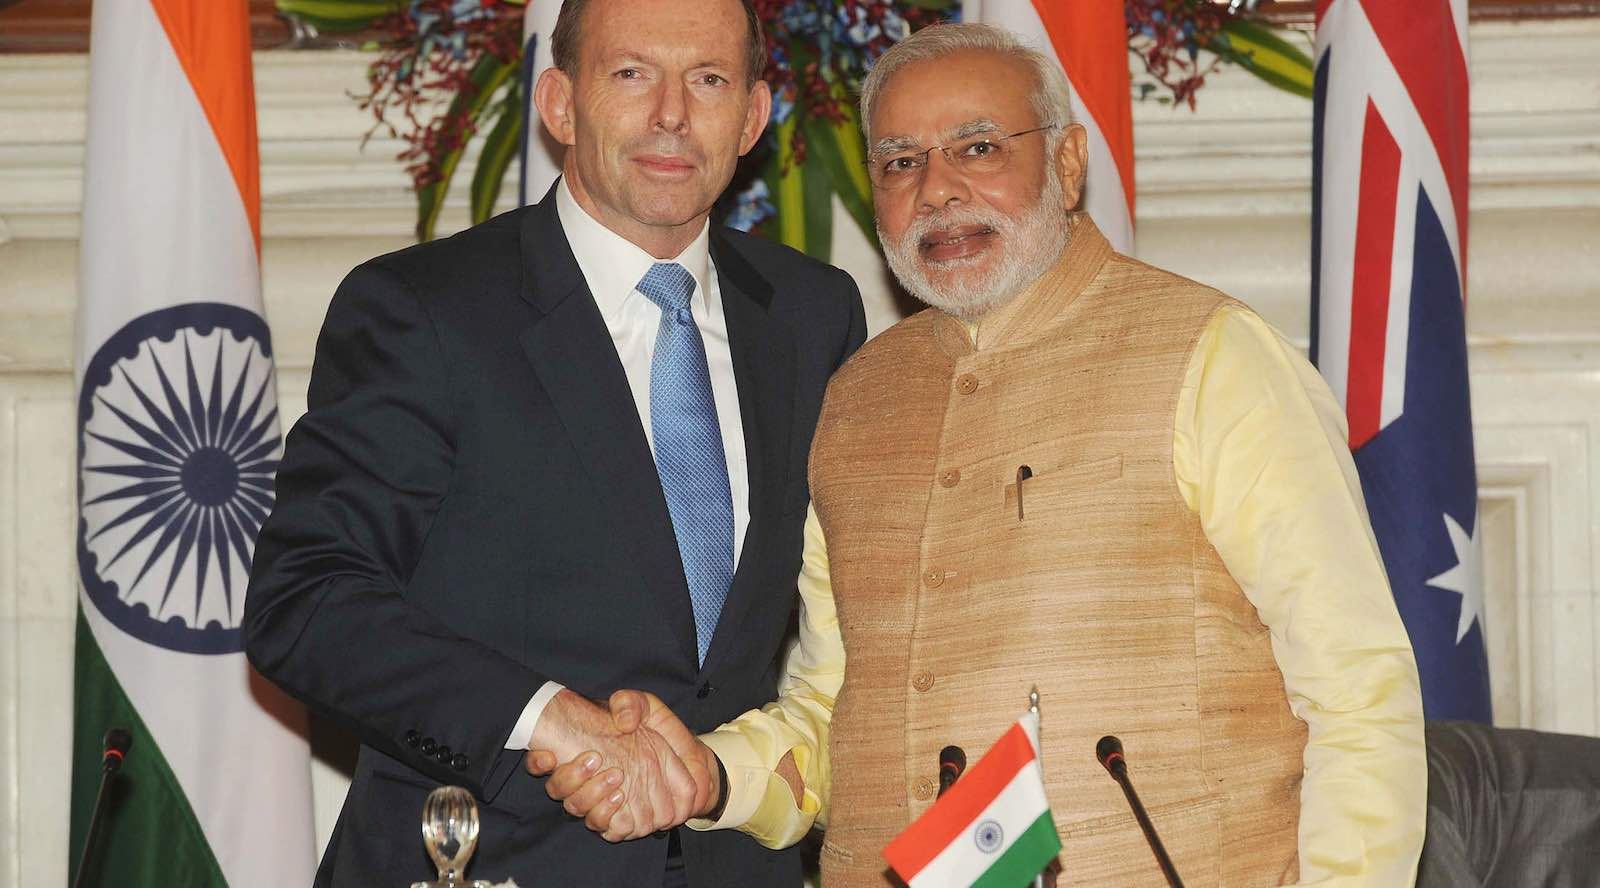 Then Australian prime minister Tony Abbott with India's Narendra Modi in 2014 (Photo: Narendra Modi/Flickr)